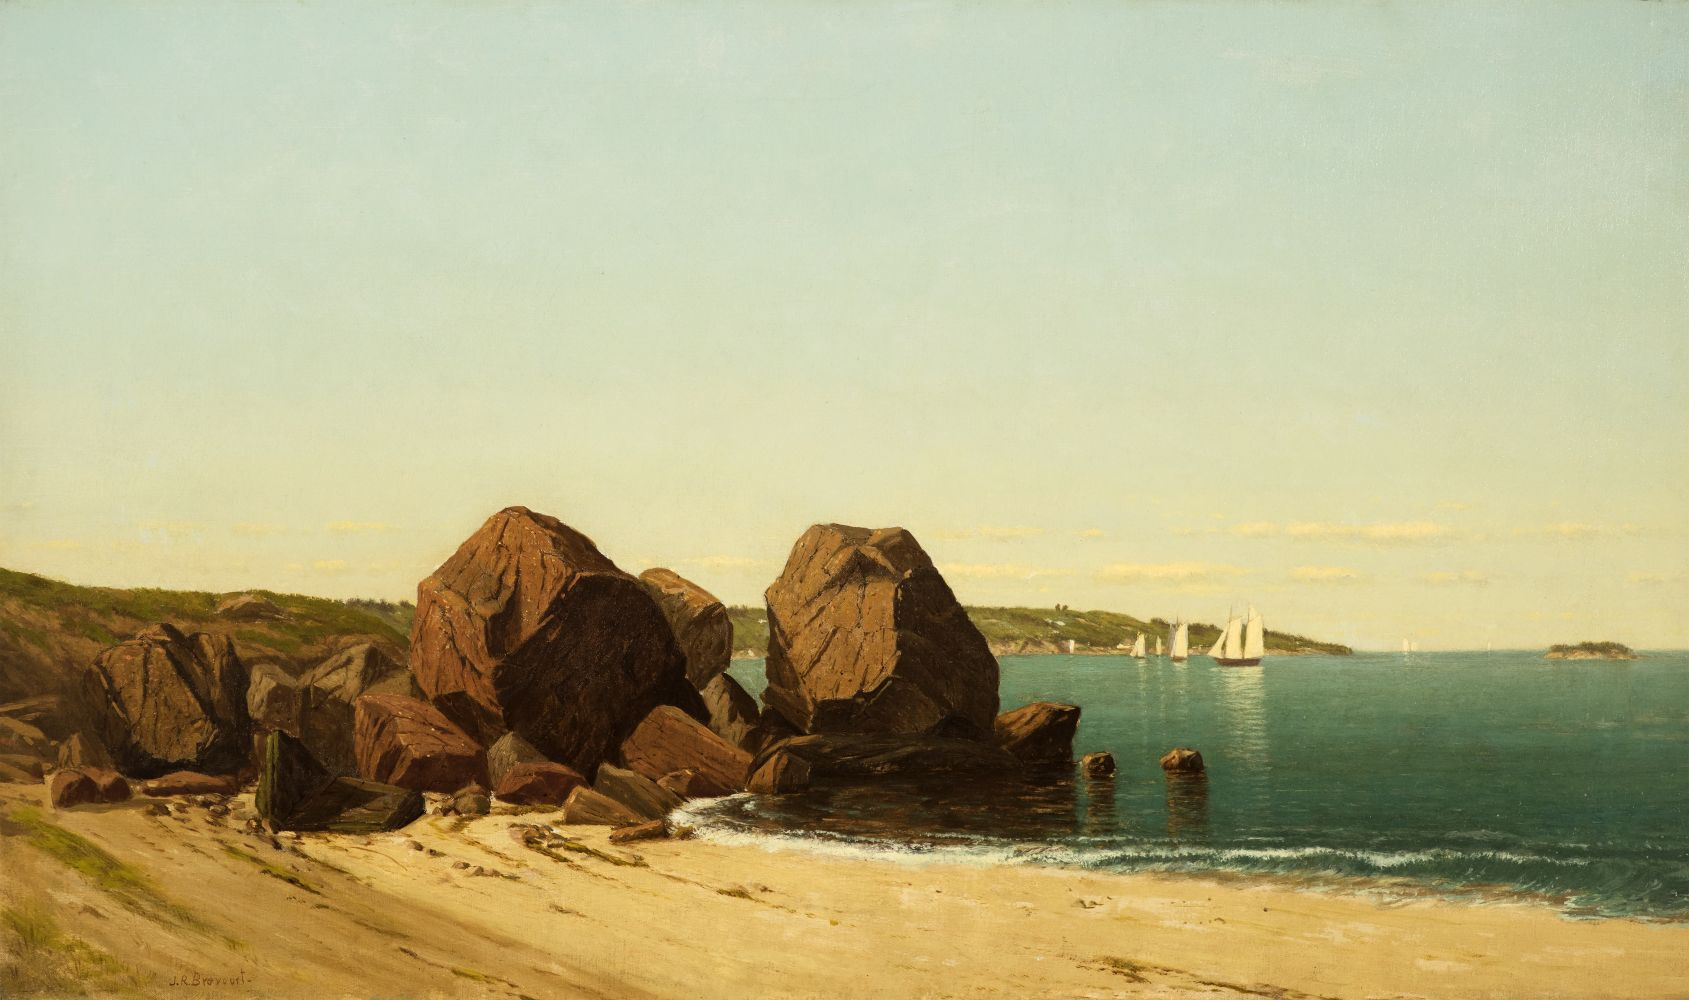 James R. Brevoort (1832–1918), Half Moon Cove at Gloucester Bay, c. 1870, oil on canvas, 18 x 30 in., signed lower left: J. R. Brevoort